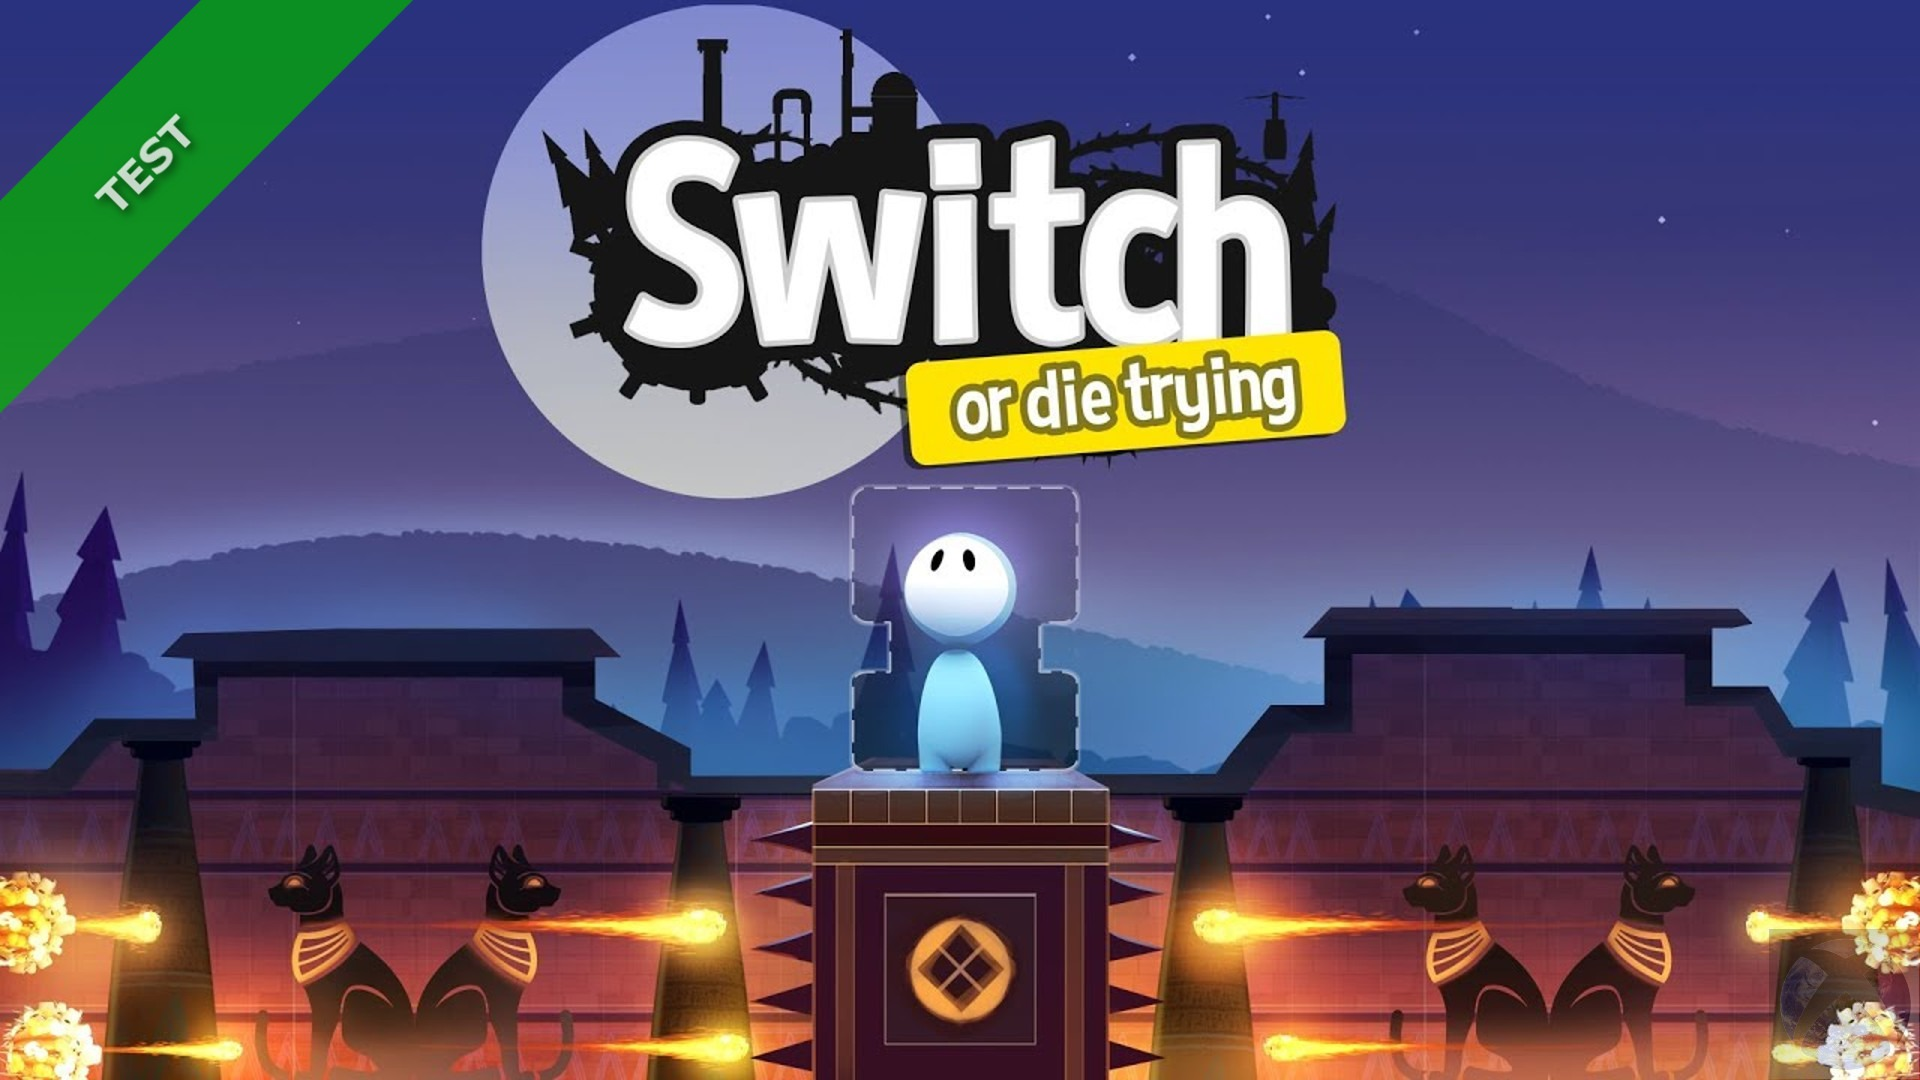 TEST Switch-or Die Trying - XWFR